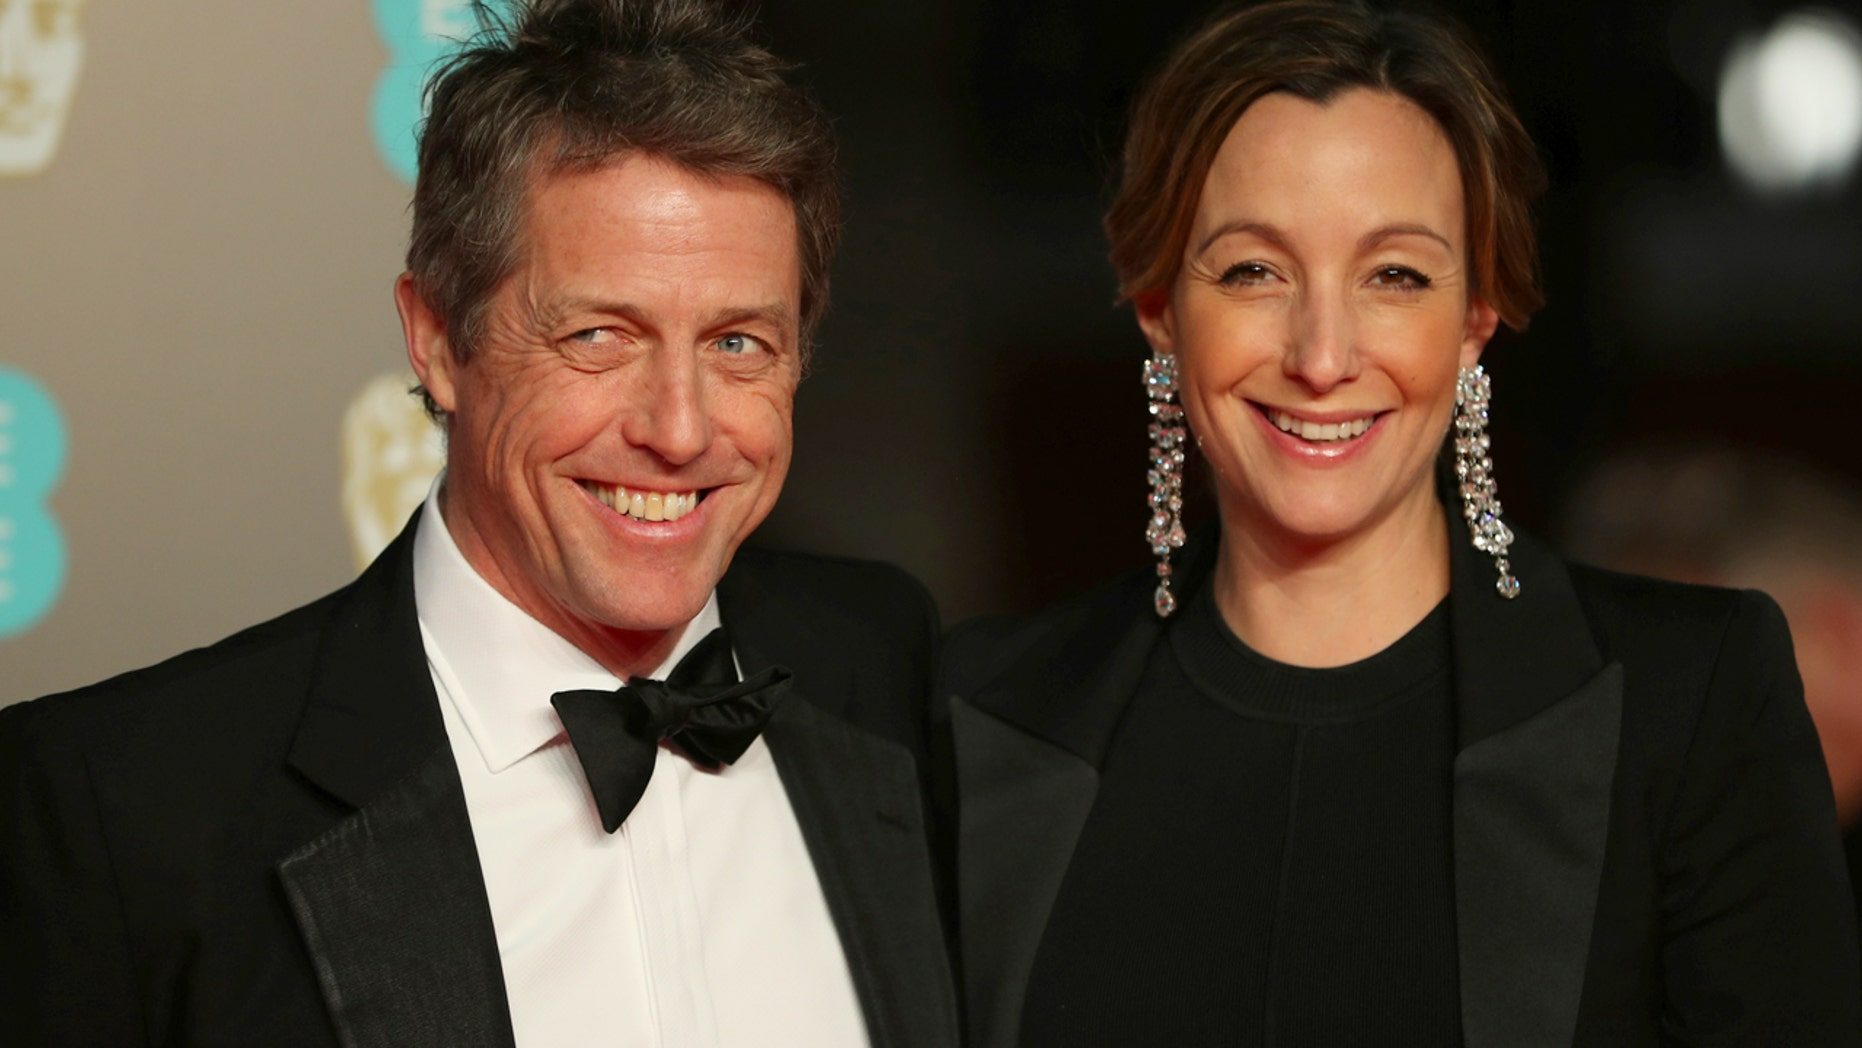 British actor Hugh Grant has reportedly married is long-time girlfriend, Swedish television producer Anna Eberstein in London.